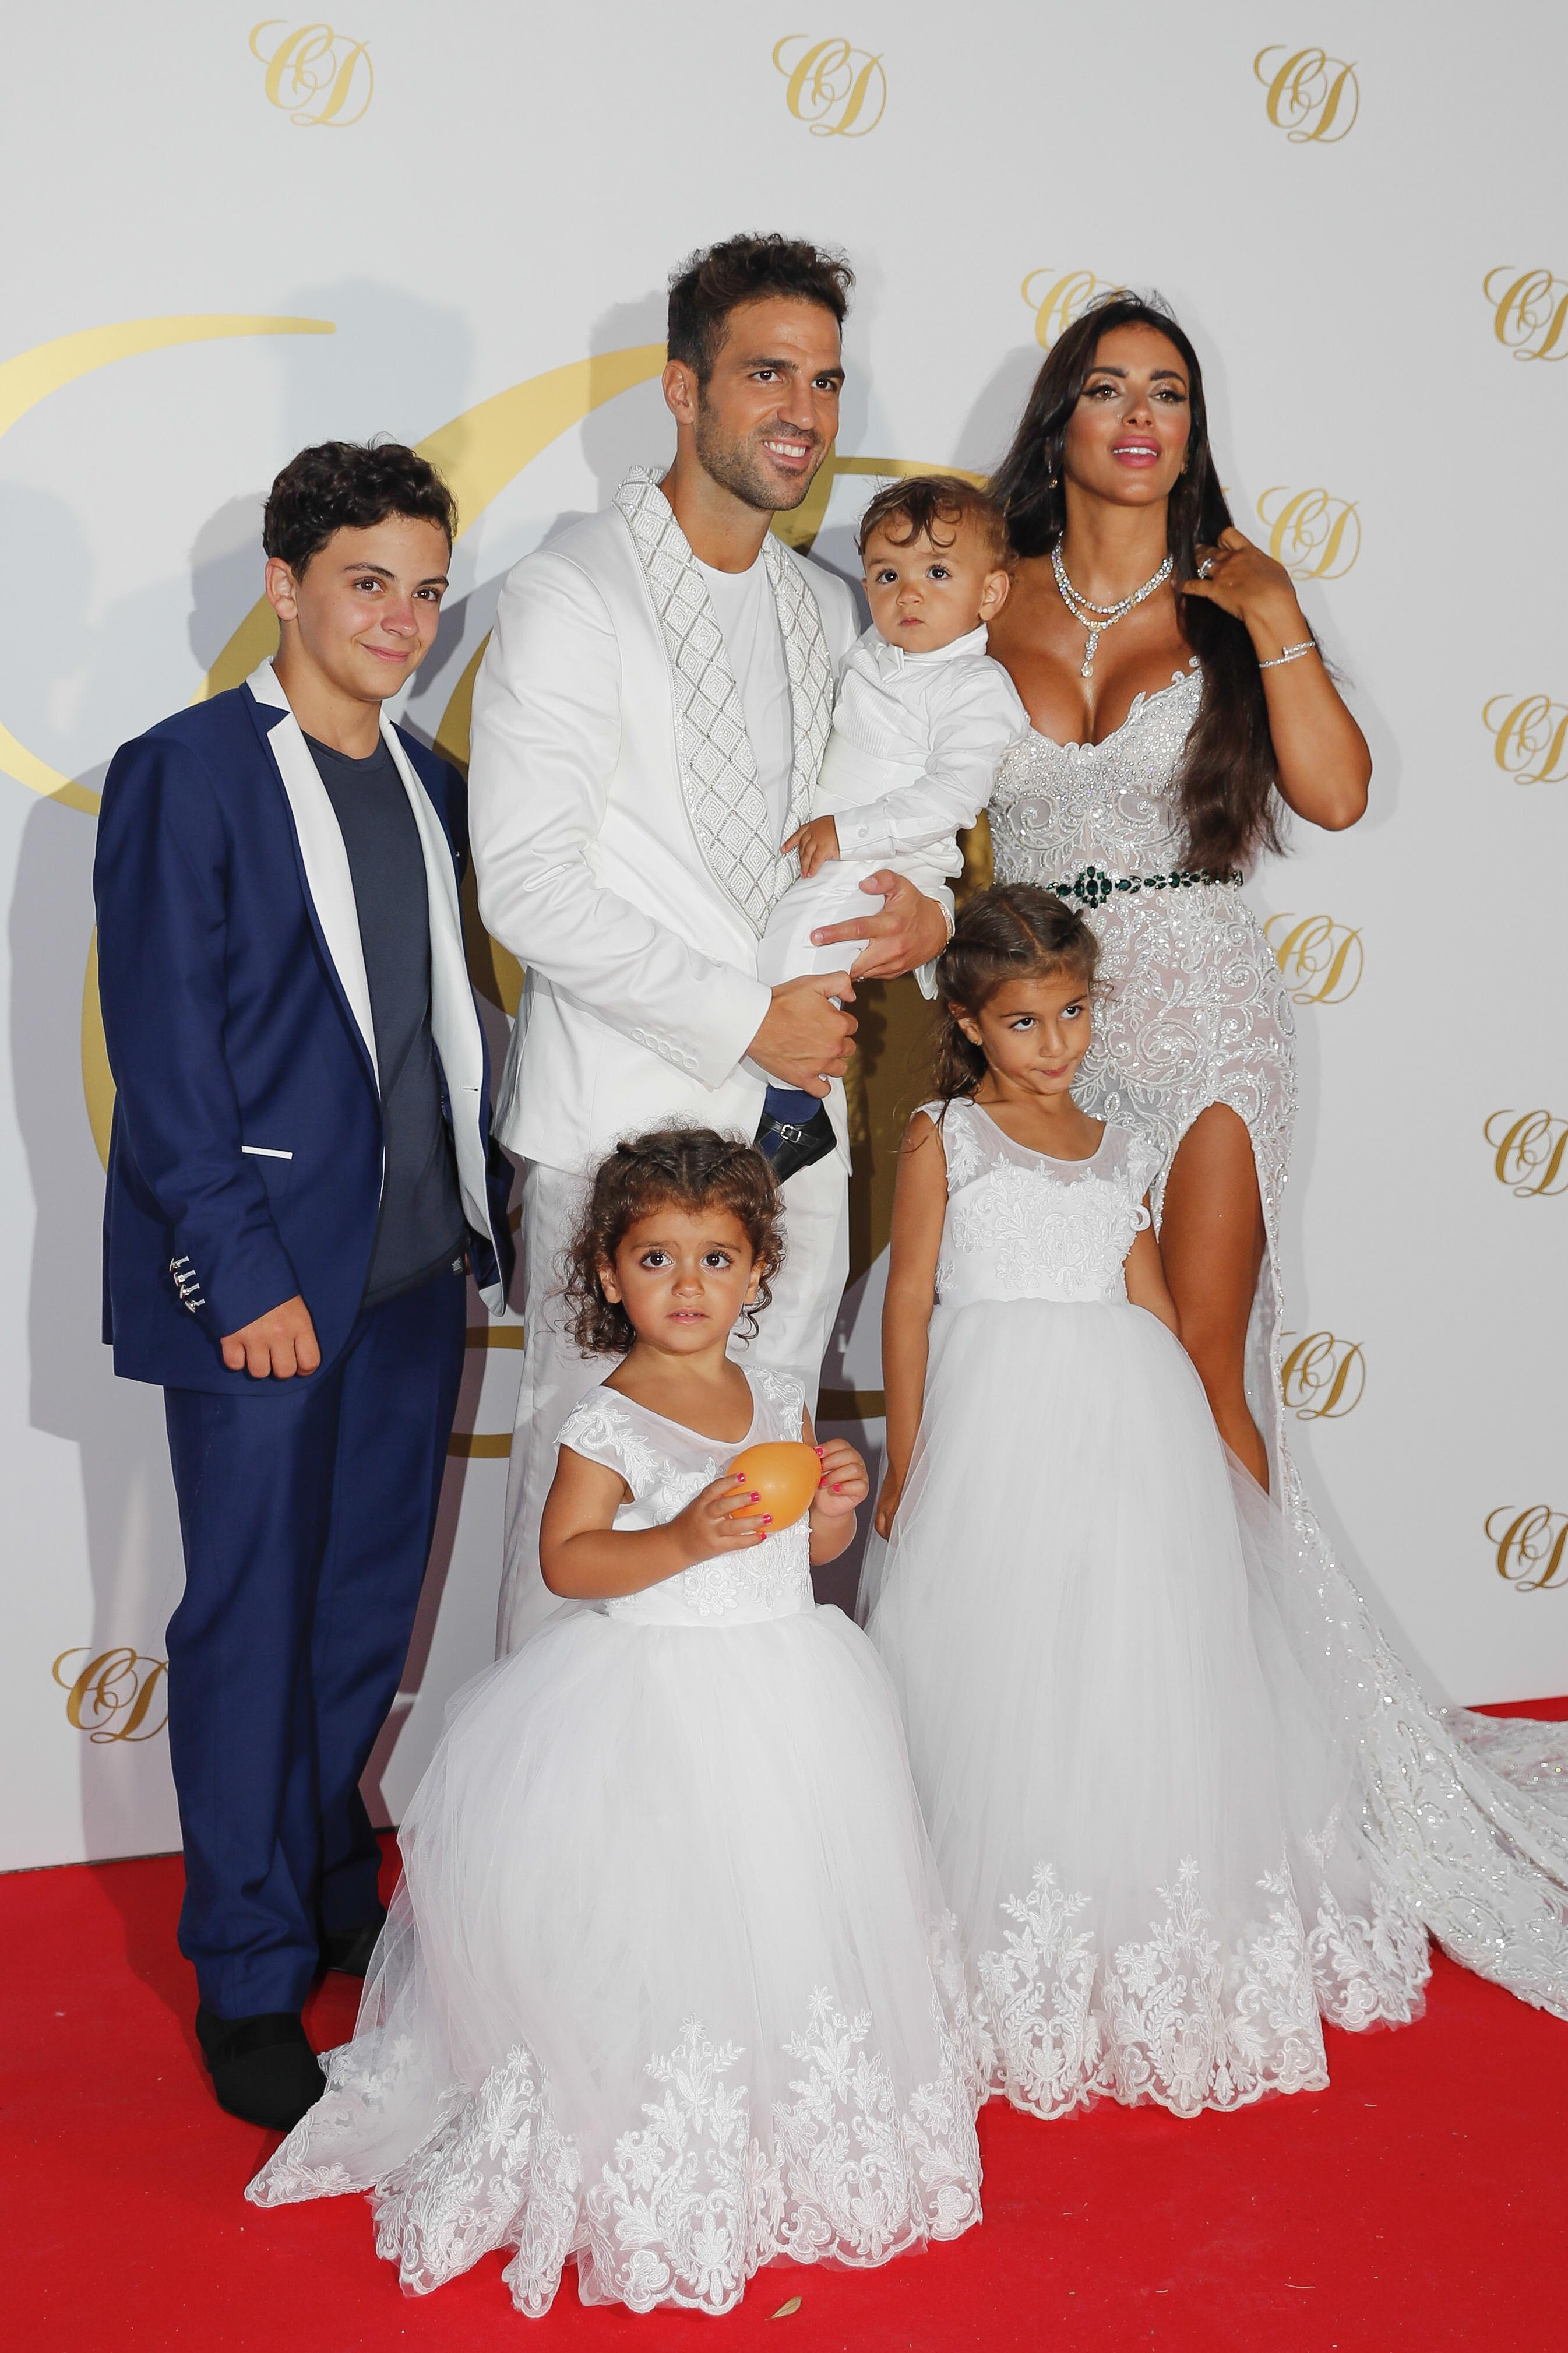 Cesc Fabregas and wife Daniella Semaan celebrate their marriage with their children in Ibiza